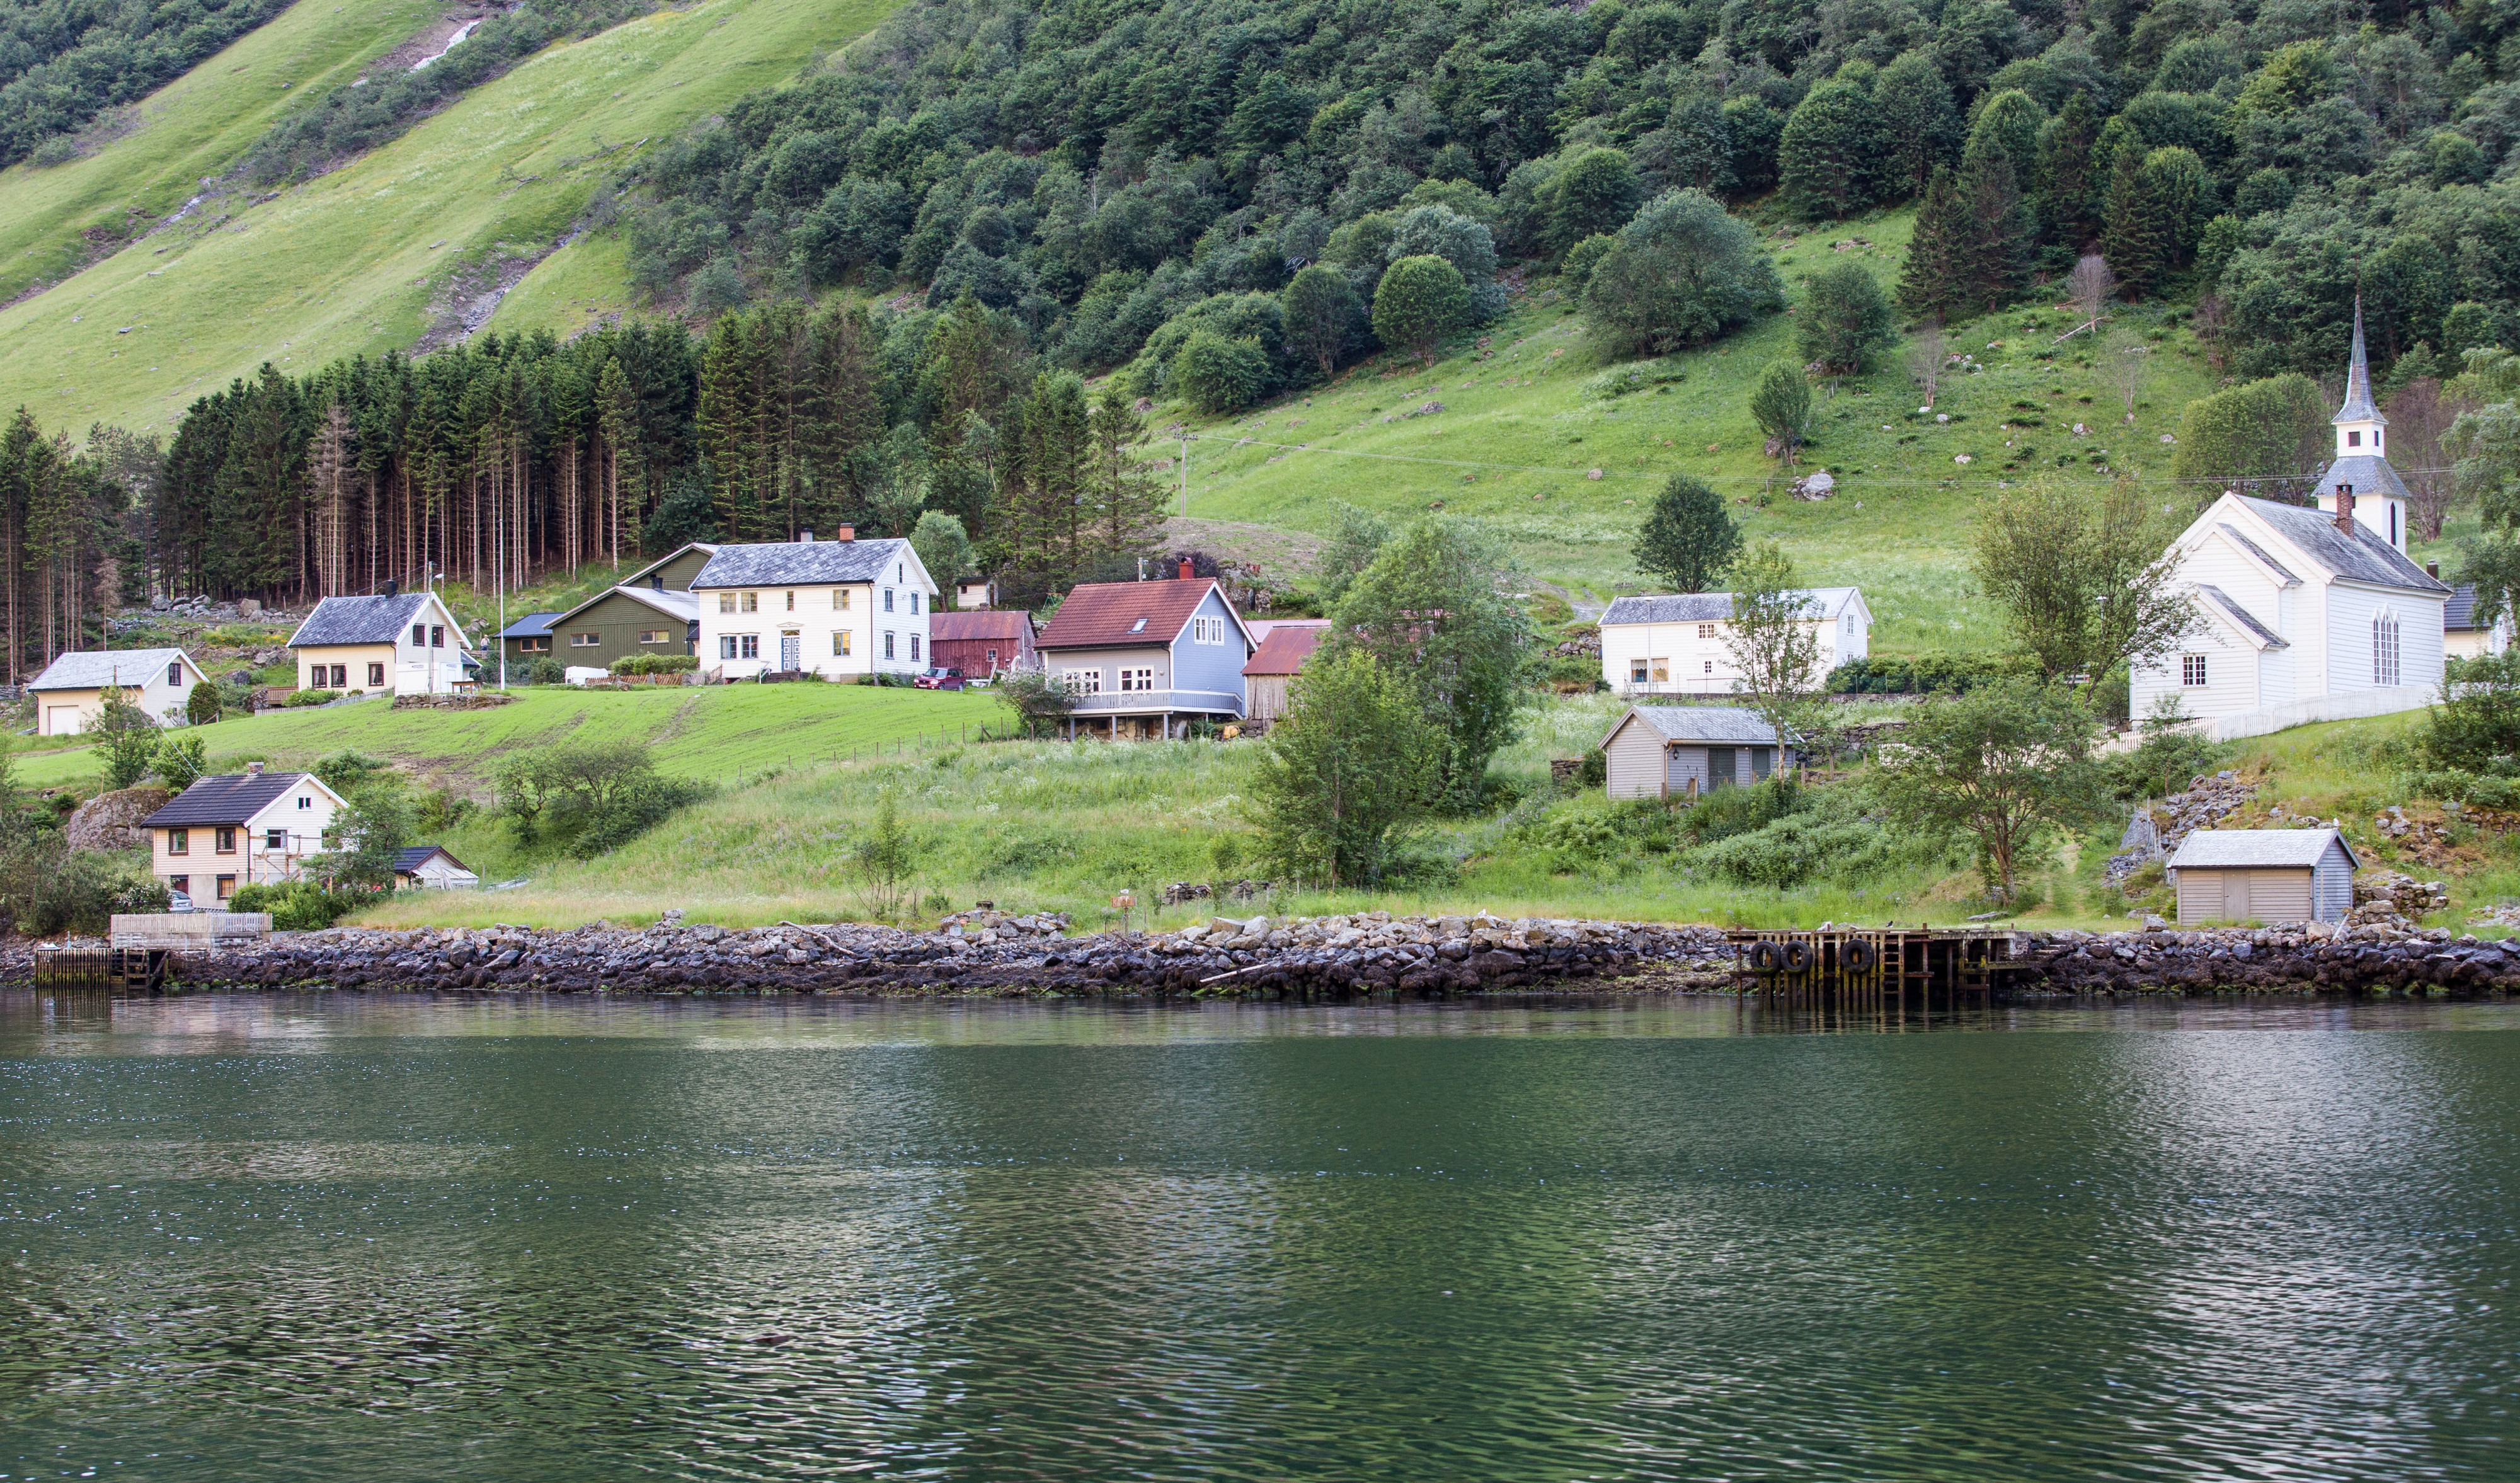 a branch of the Sognefjord, Norway, near Flåm, June 2014, picture 97